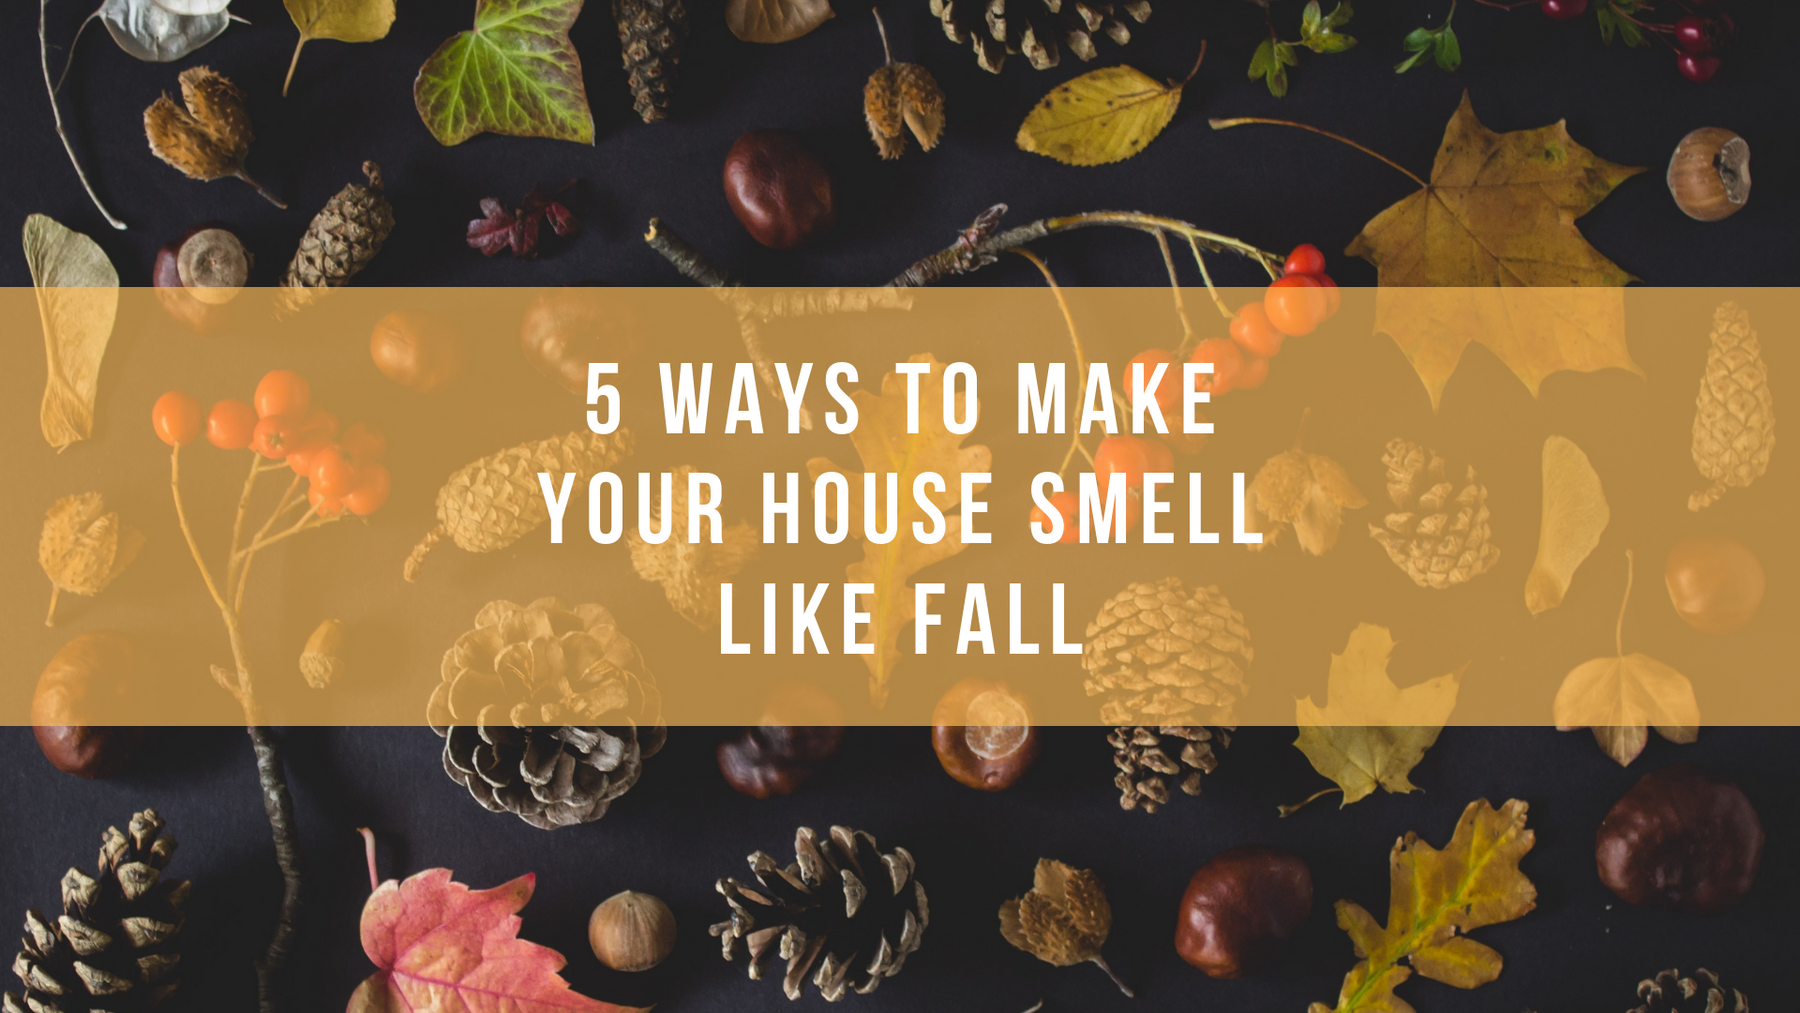 5 Ways To Make Your House Smell Like Fall